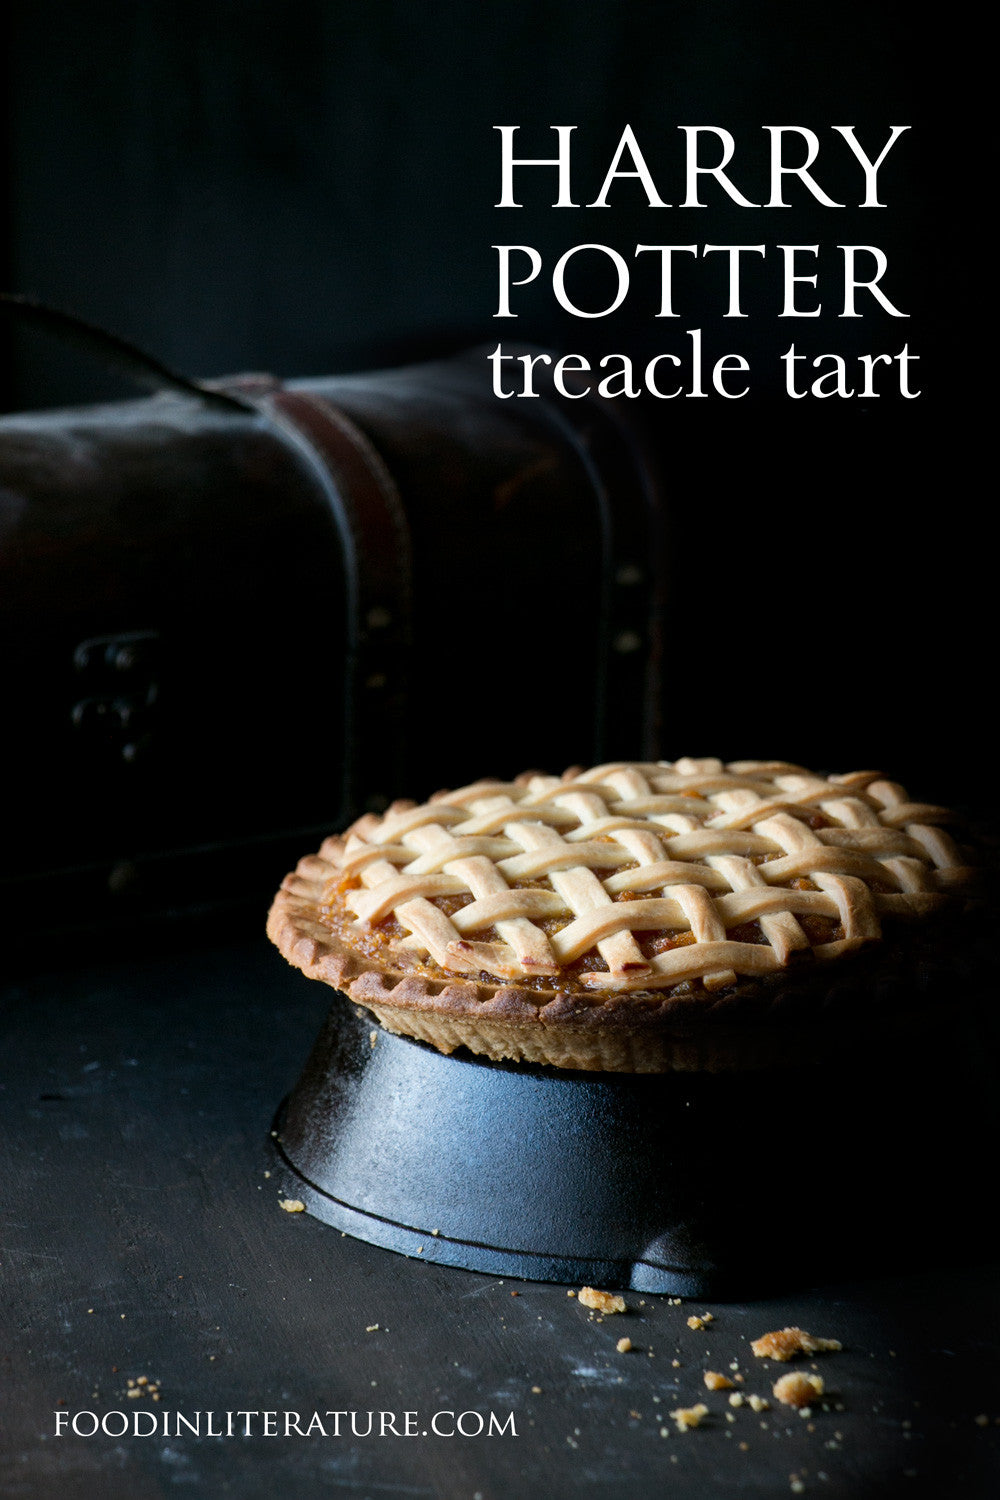 Nomification - Harry Potter Treacle Tart